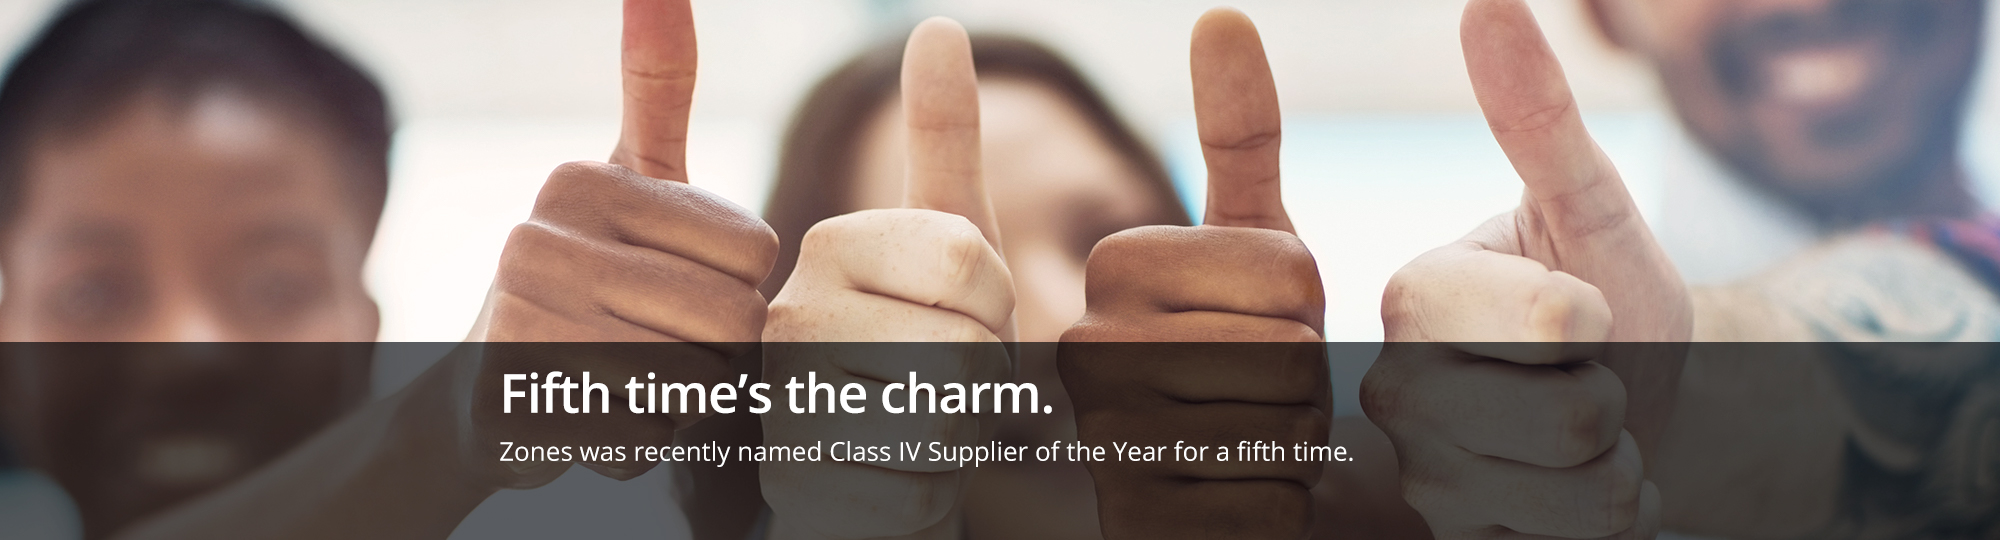 Fifth time's the charm. Zones was recently named Class IV Supplier of the Year for a fifth time in a row.